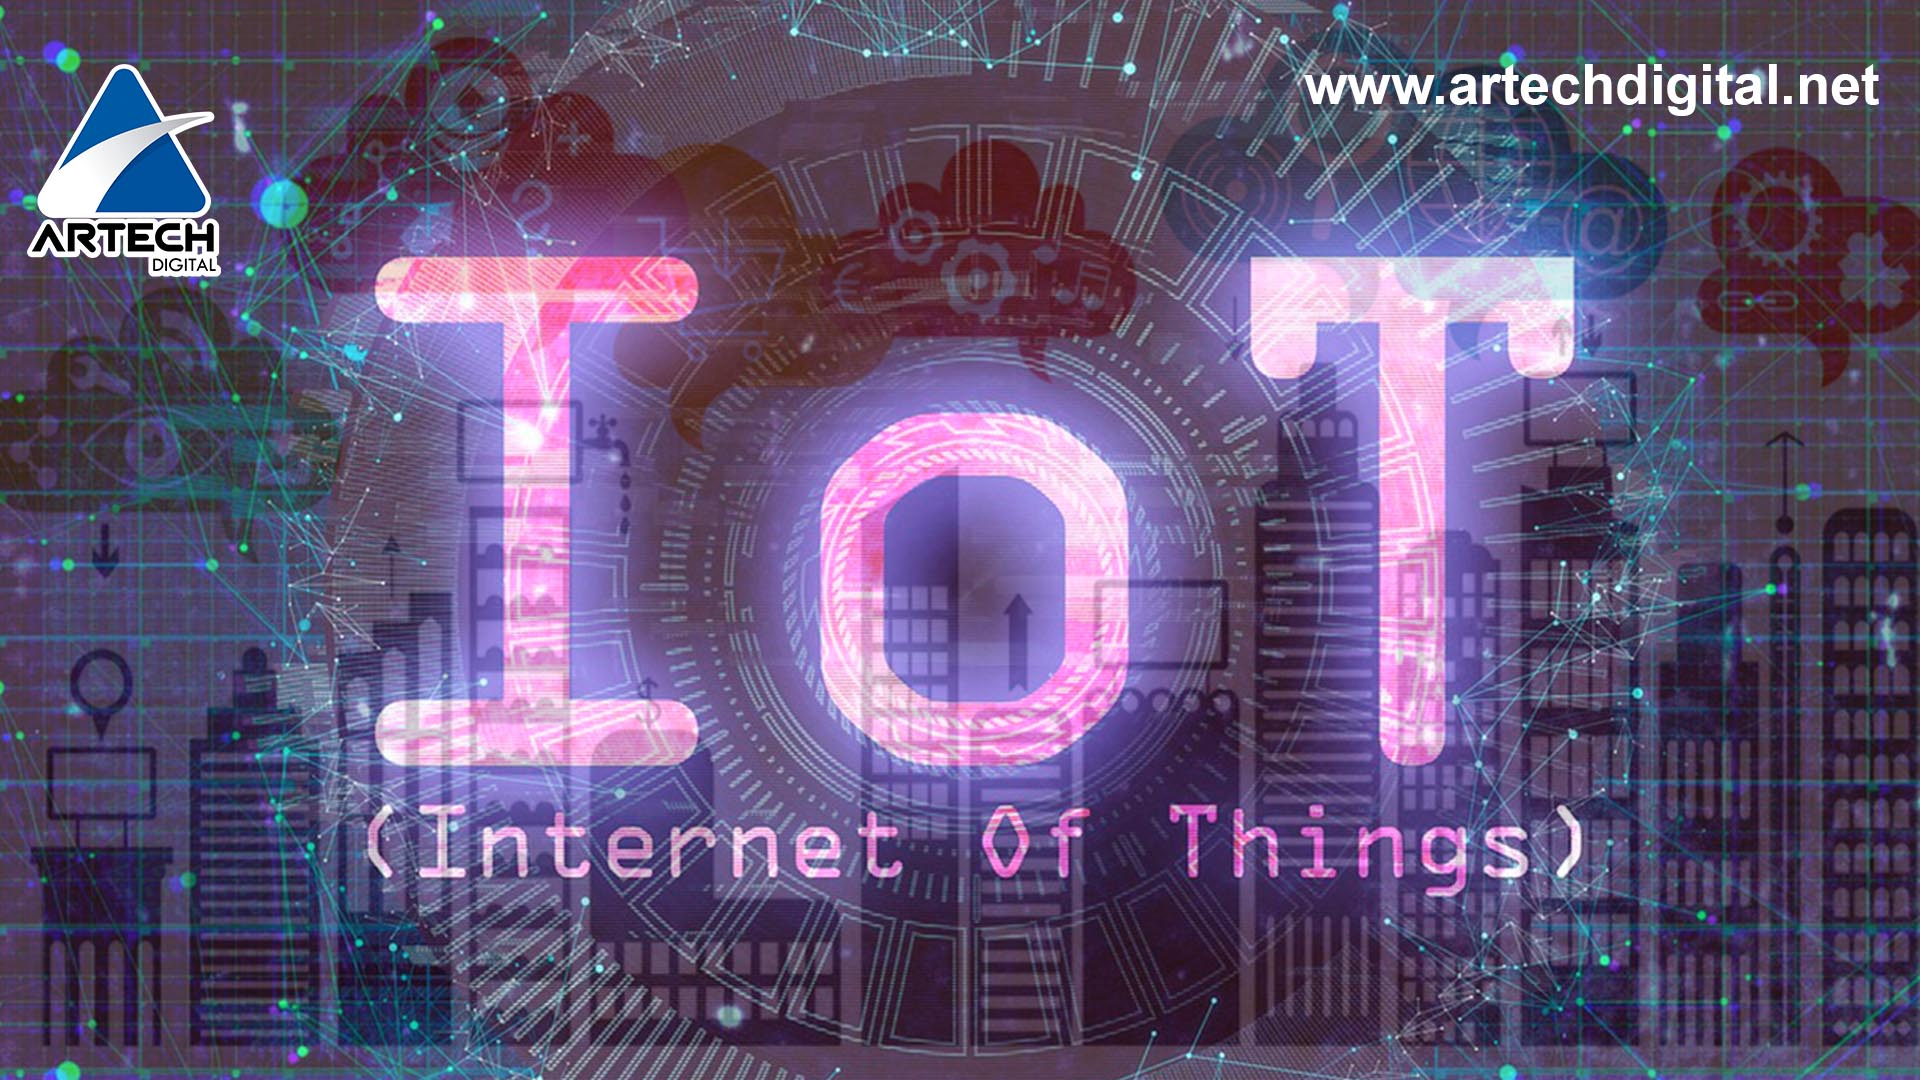 integrating IOT into your business - Artech Digital